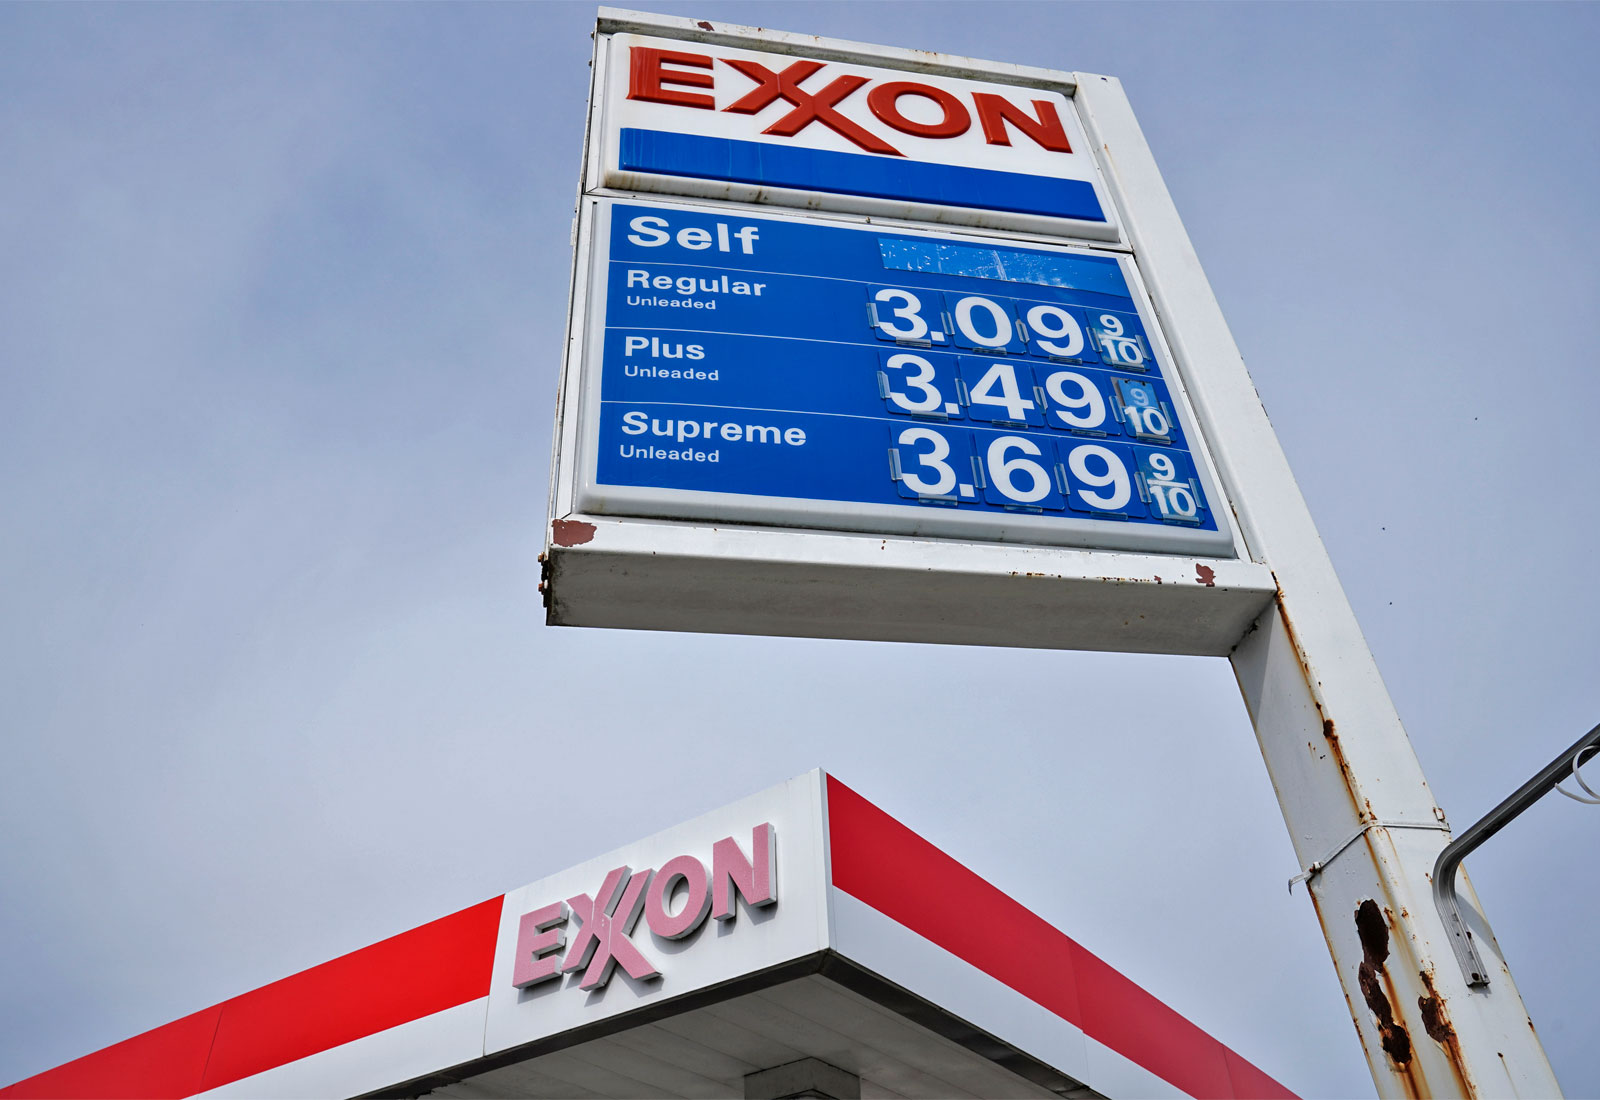 Low angle view of an Exxon gas station sign